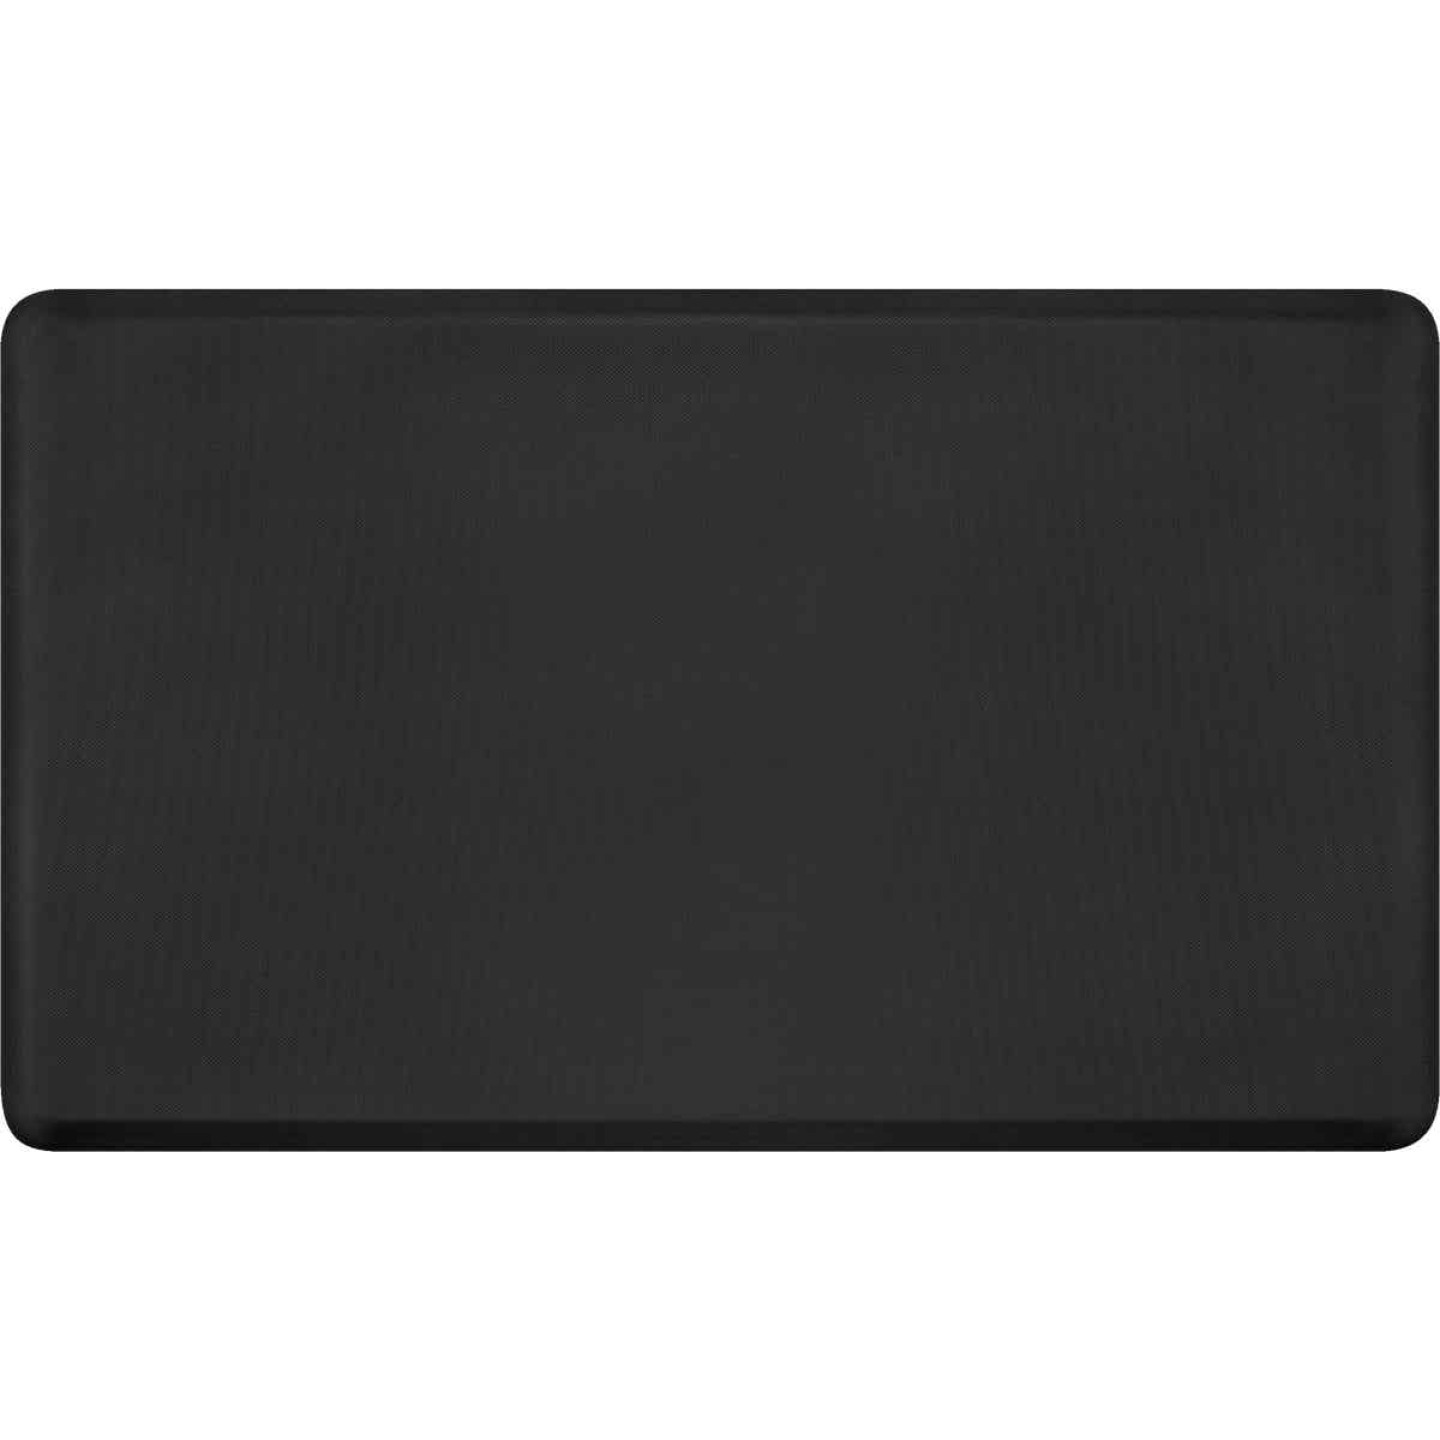 GelPro NewLife Advantage 18 In. x 30 In. Black Commercial Anti-Fatigue Mat Image 1